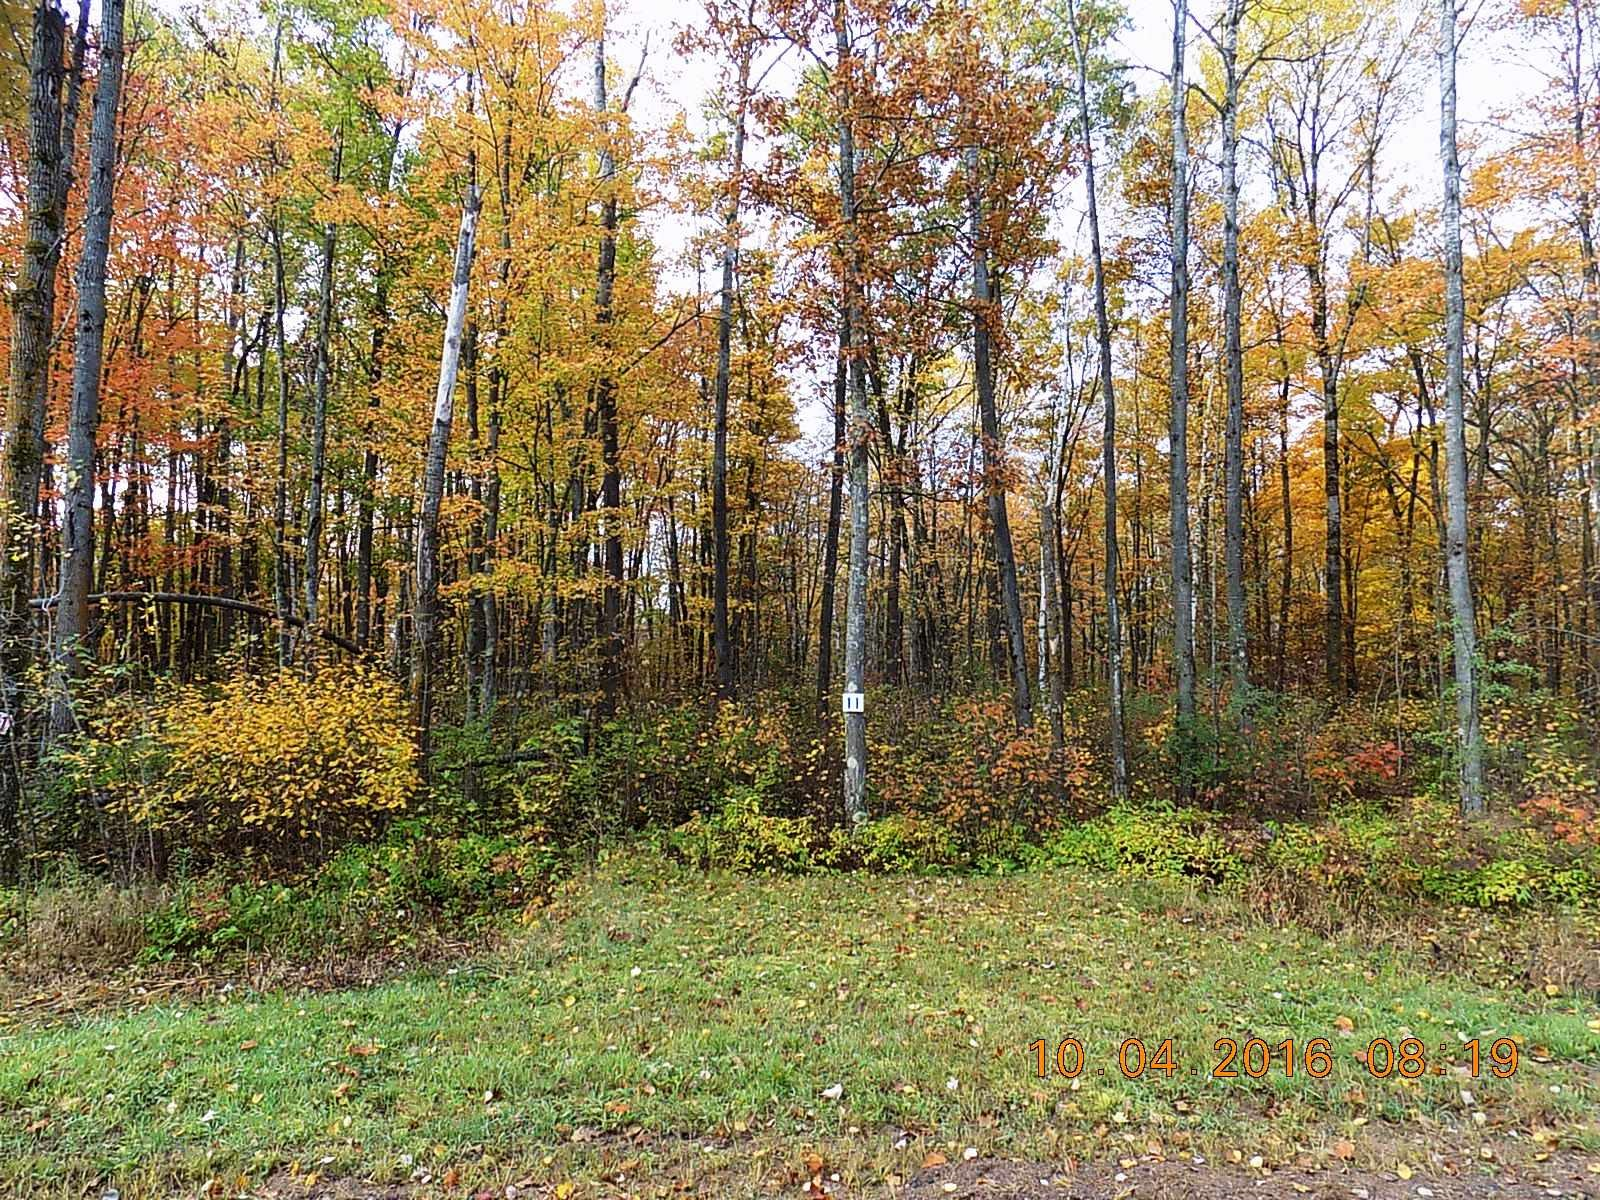 2+ Acre Lot for Sale Near Interstate 35, Sandstone, MN